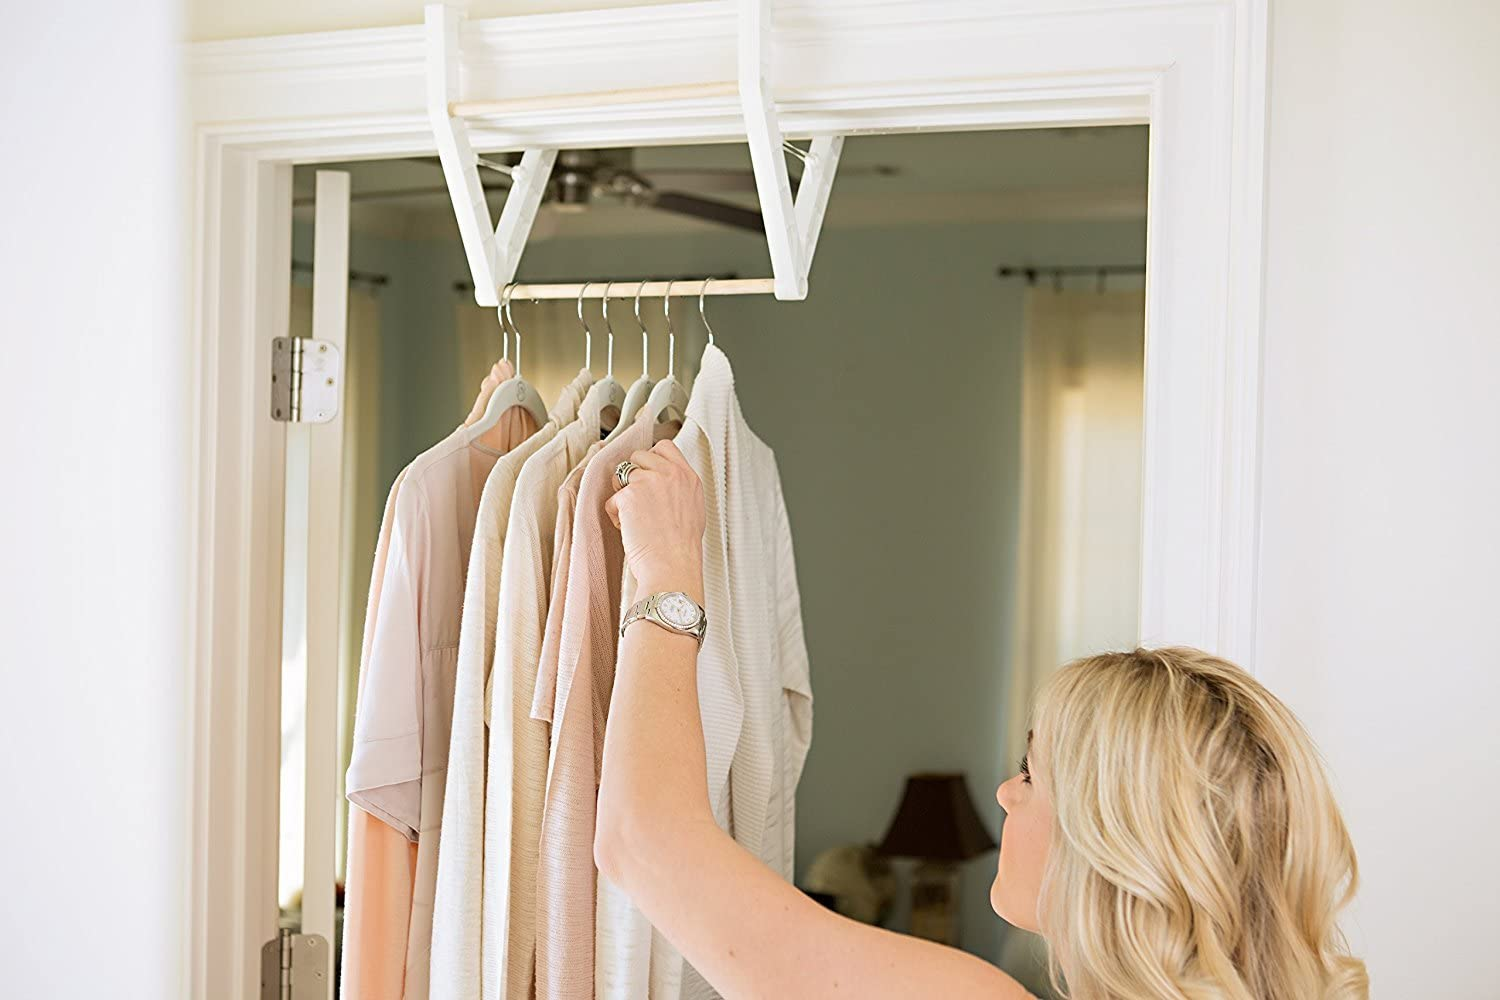 or Extra Closet Space Drying Rack,Clothing Bar The Marge Clothing Rod